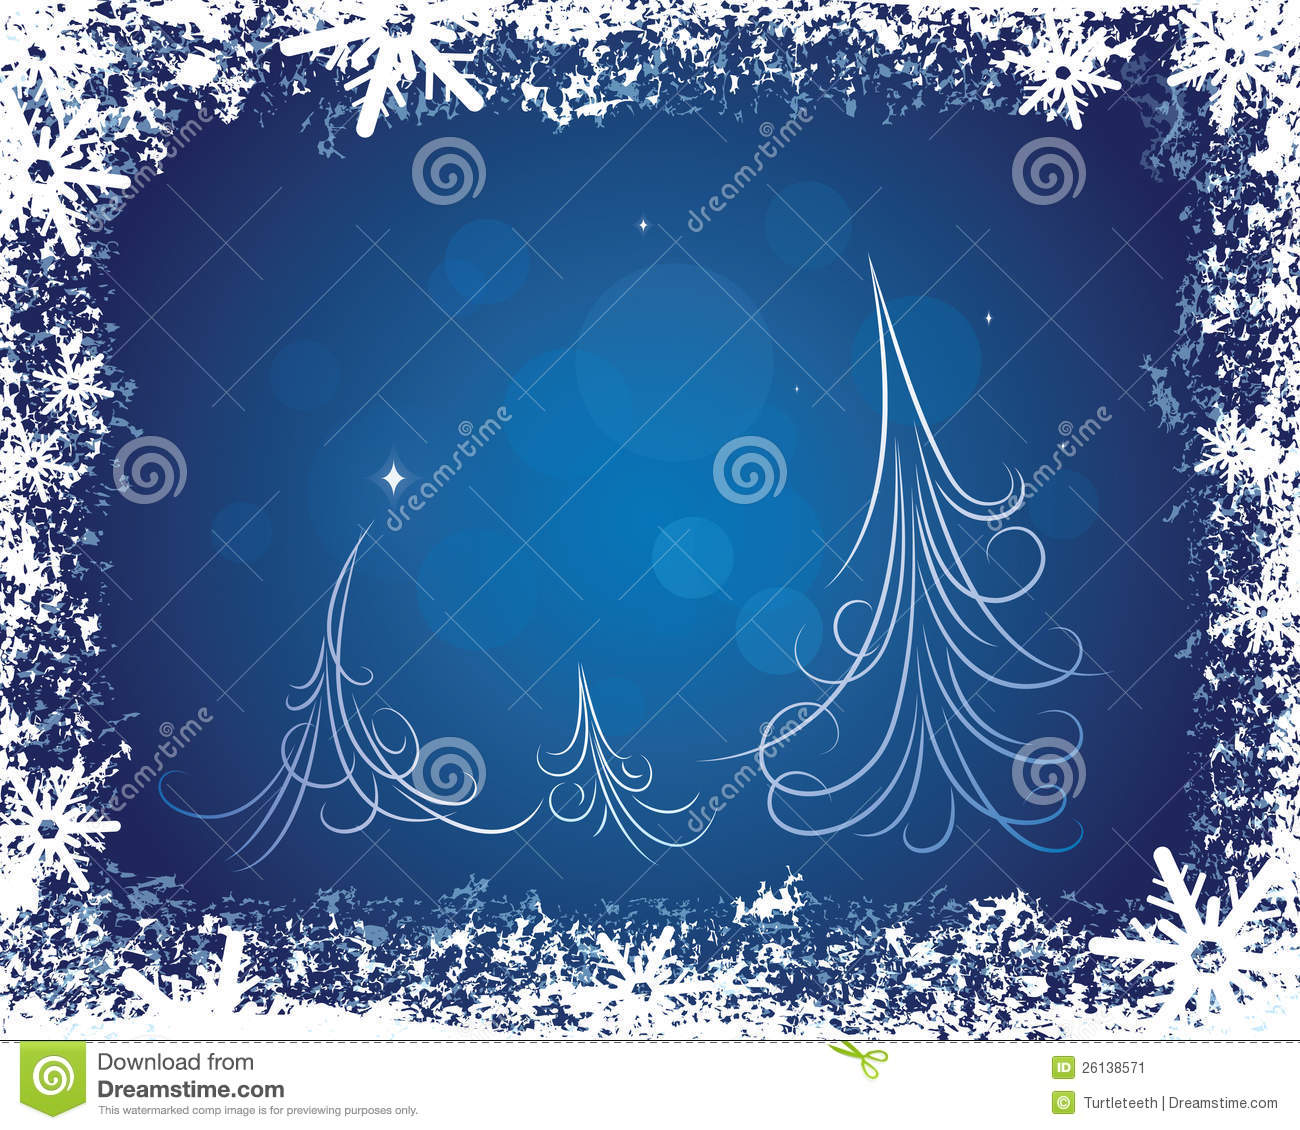 Winter background with trees and snowflakes